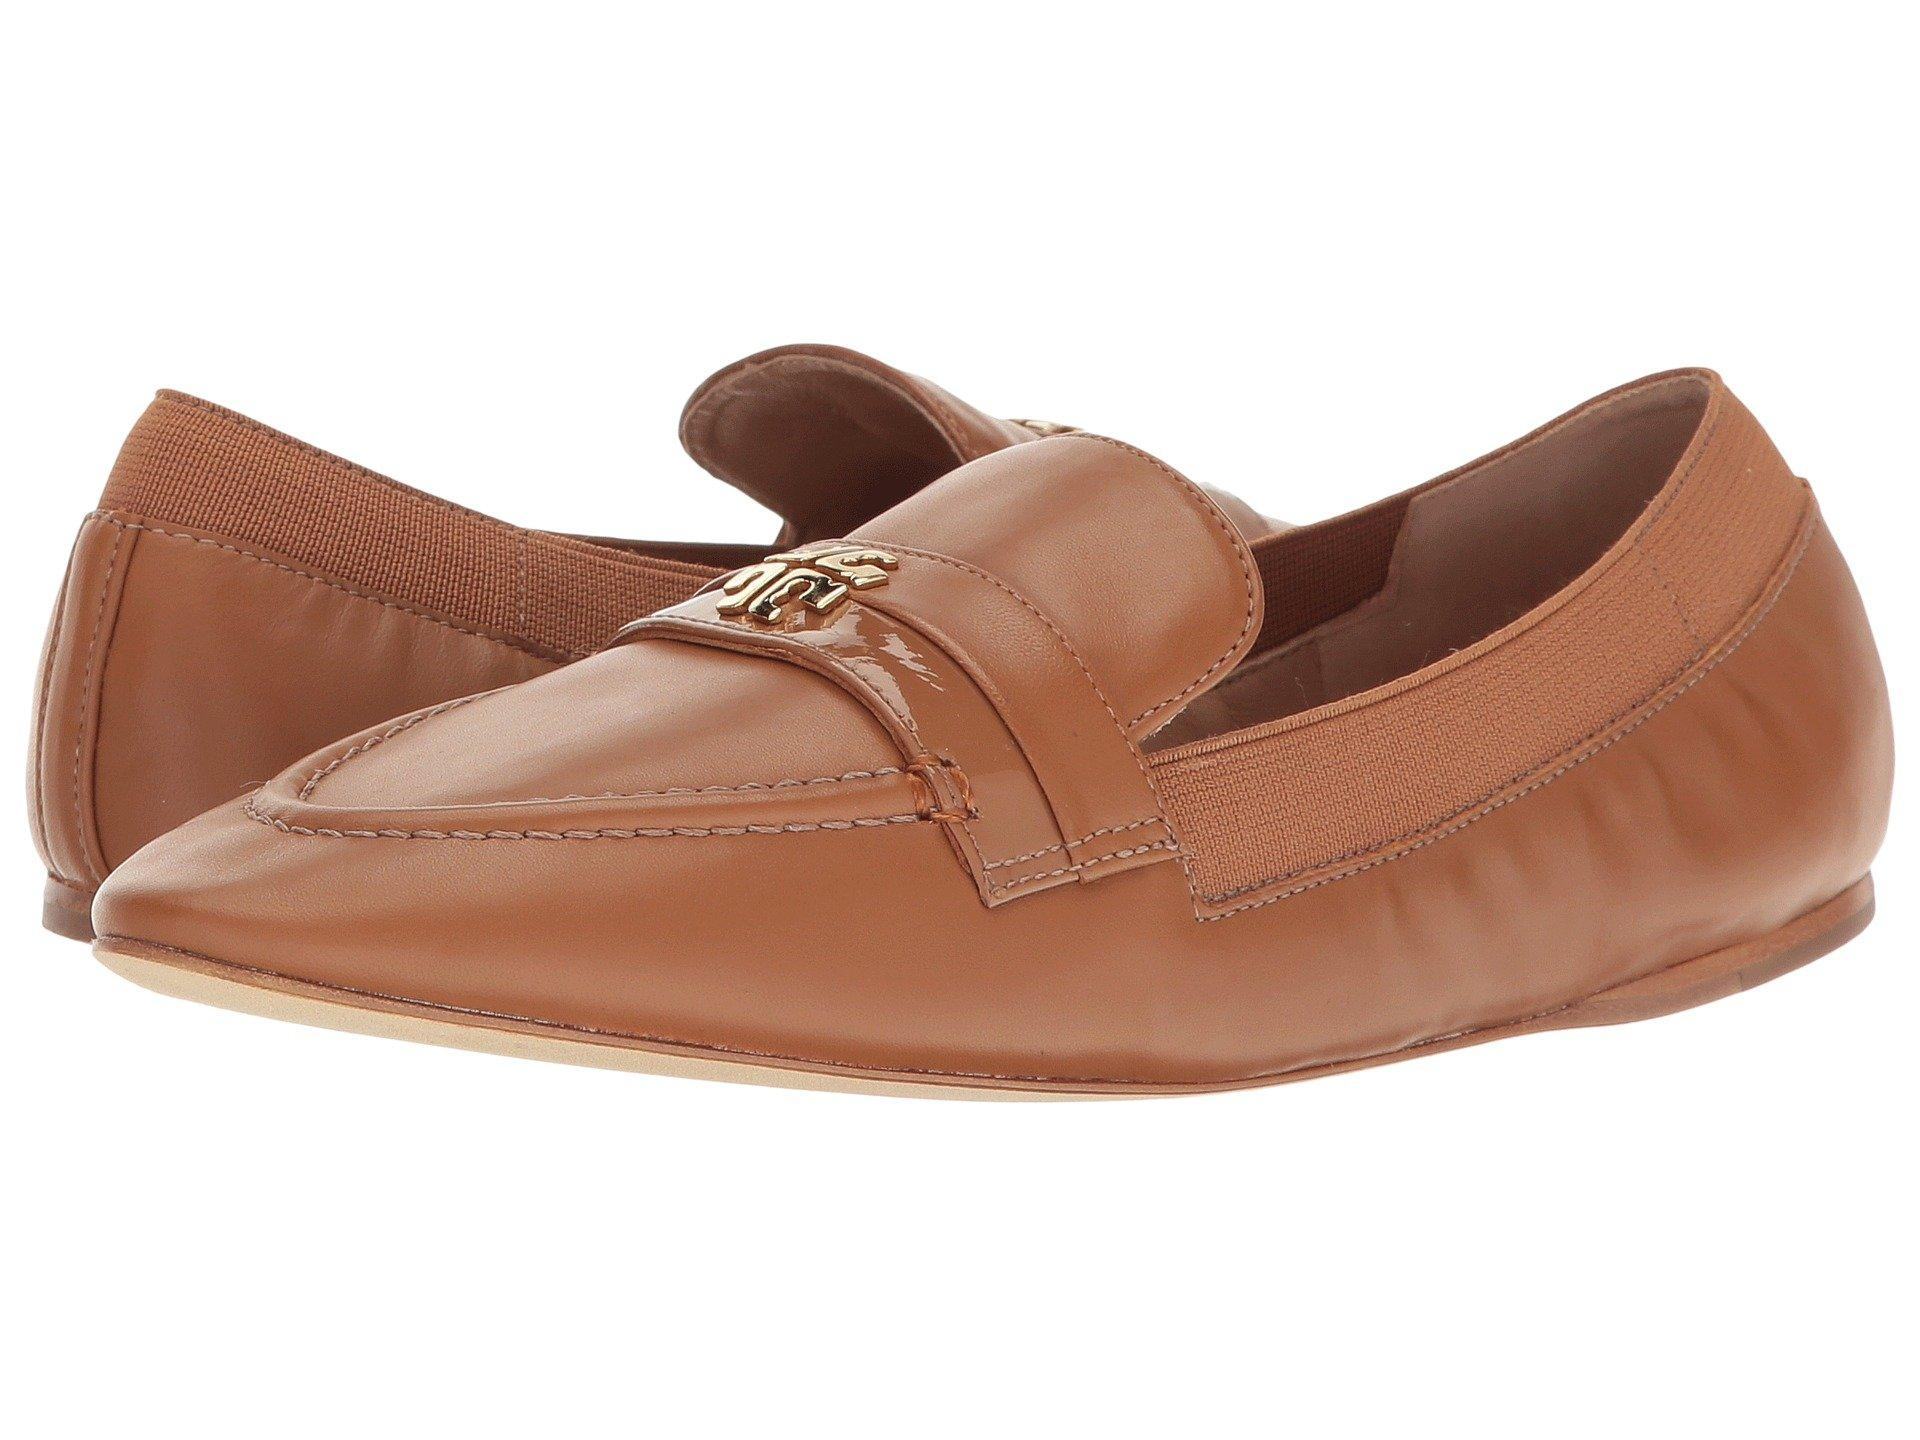 60a442bcc26 Tory Burch Jolie Loafer In Royal Tan